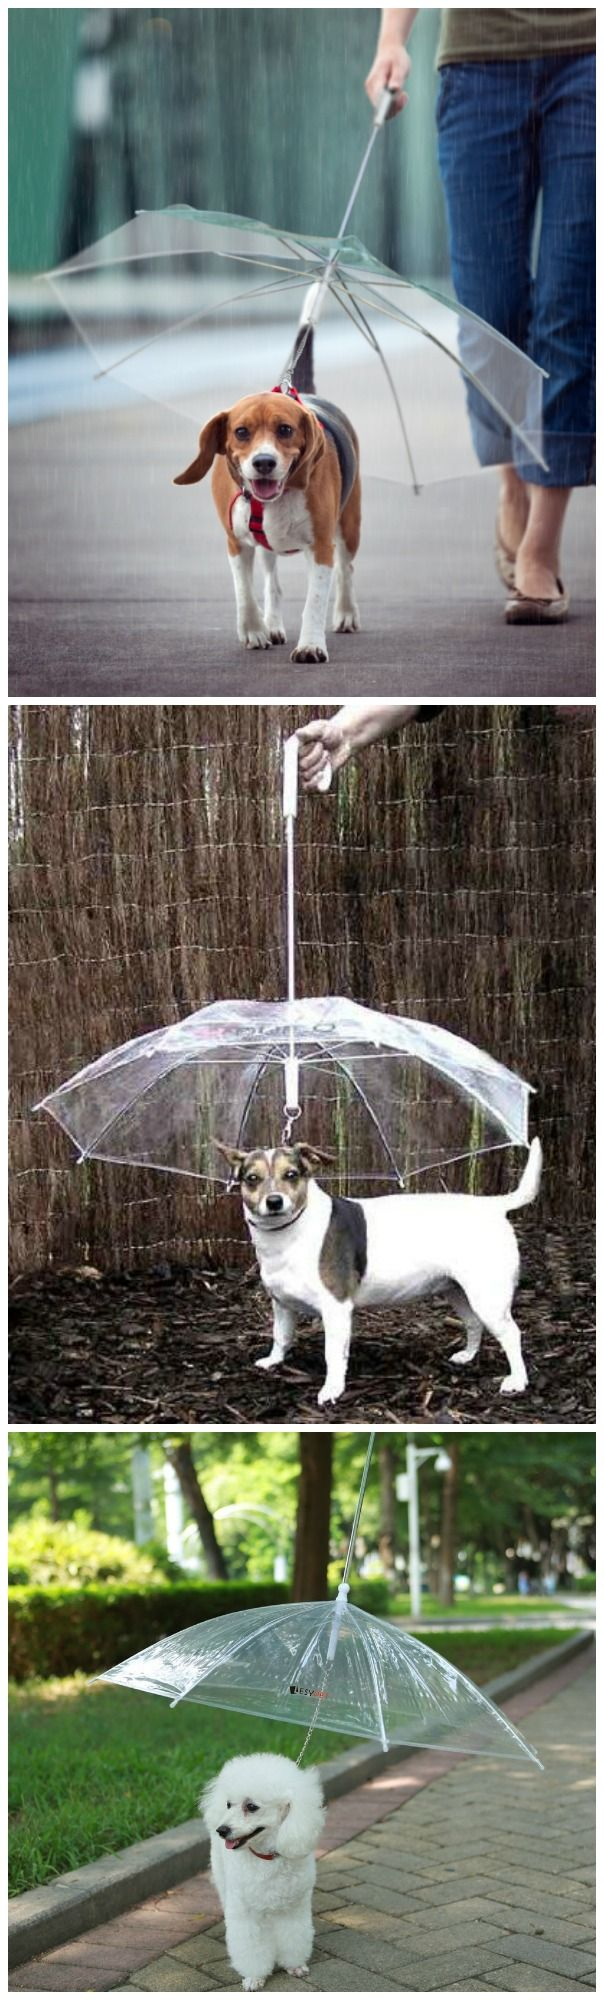 What a great idea! An umbrella designed to keep your furry friend dry when taking walks in the rain. #affiliate